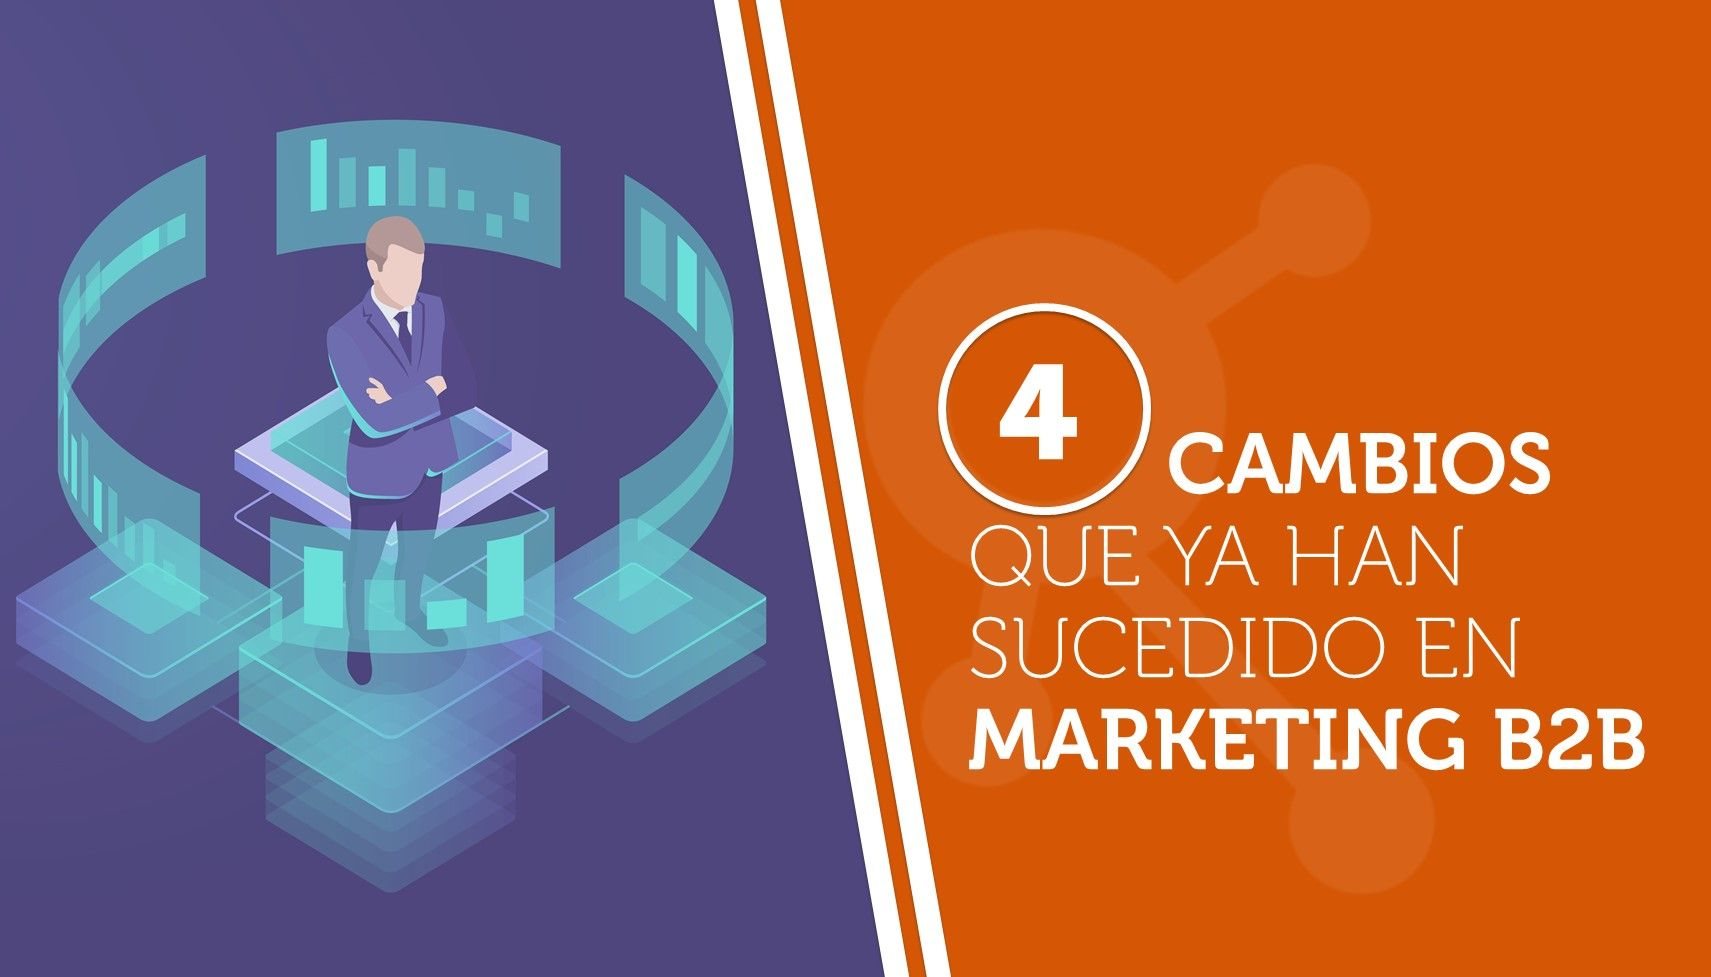 Cuatro cambios que ya han sucedido en marketing B2B